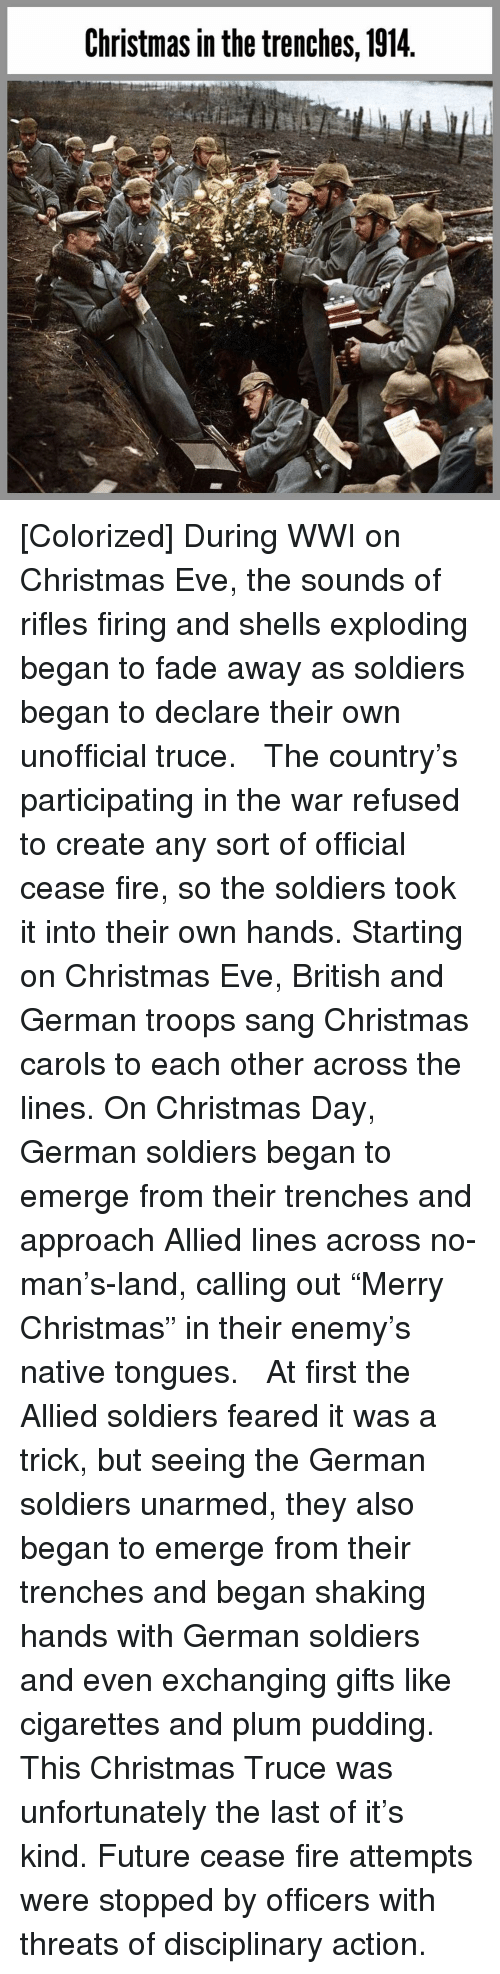 "Carols: Christmas in the trenches, 1914 [Colorized] During WWI on Christmas Eve, the sounds of rifles firing and shells exploding began to fade away as soldiers began to declare their own unofficial truce. ⁣ ⁣ The country's participating in the war refused to create any sort of official cease fire, so the soldiers took it into their own hands. Starting on Christmas Eve, British and German troops sang Christmas carols to each other across the lines. On Christmas Day, German soldiers began to emerge from their trenches and approach Allied lines across no-man's-land, calling out ""Merry Christmas"" in their enemy's native tongues. ⁣ ⁣ At first the Allied soldiers feared it was a trick, but seeing the German soldiers unarmed, they also began to emerge from their trenches and began shaking hands with German soldiers and even exchanging gifts like cigarettes and plum pudding. ⁣ ⁣ This Christmas Truce was unfortunately the last of it's kind. Future cease fire attempts were stopped by officers with threats of disciplinary action."